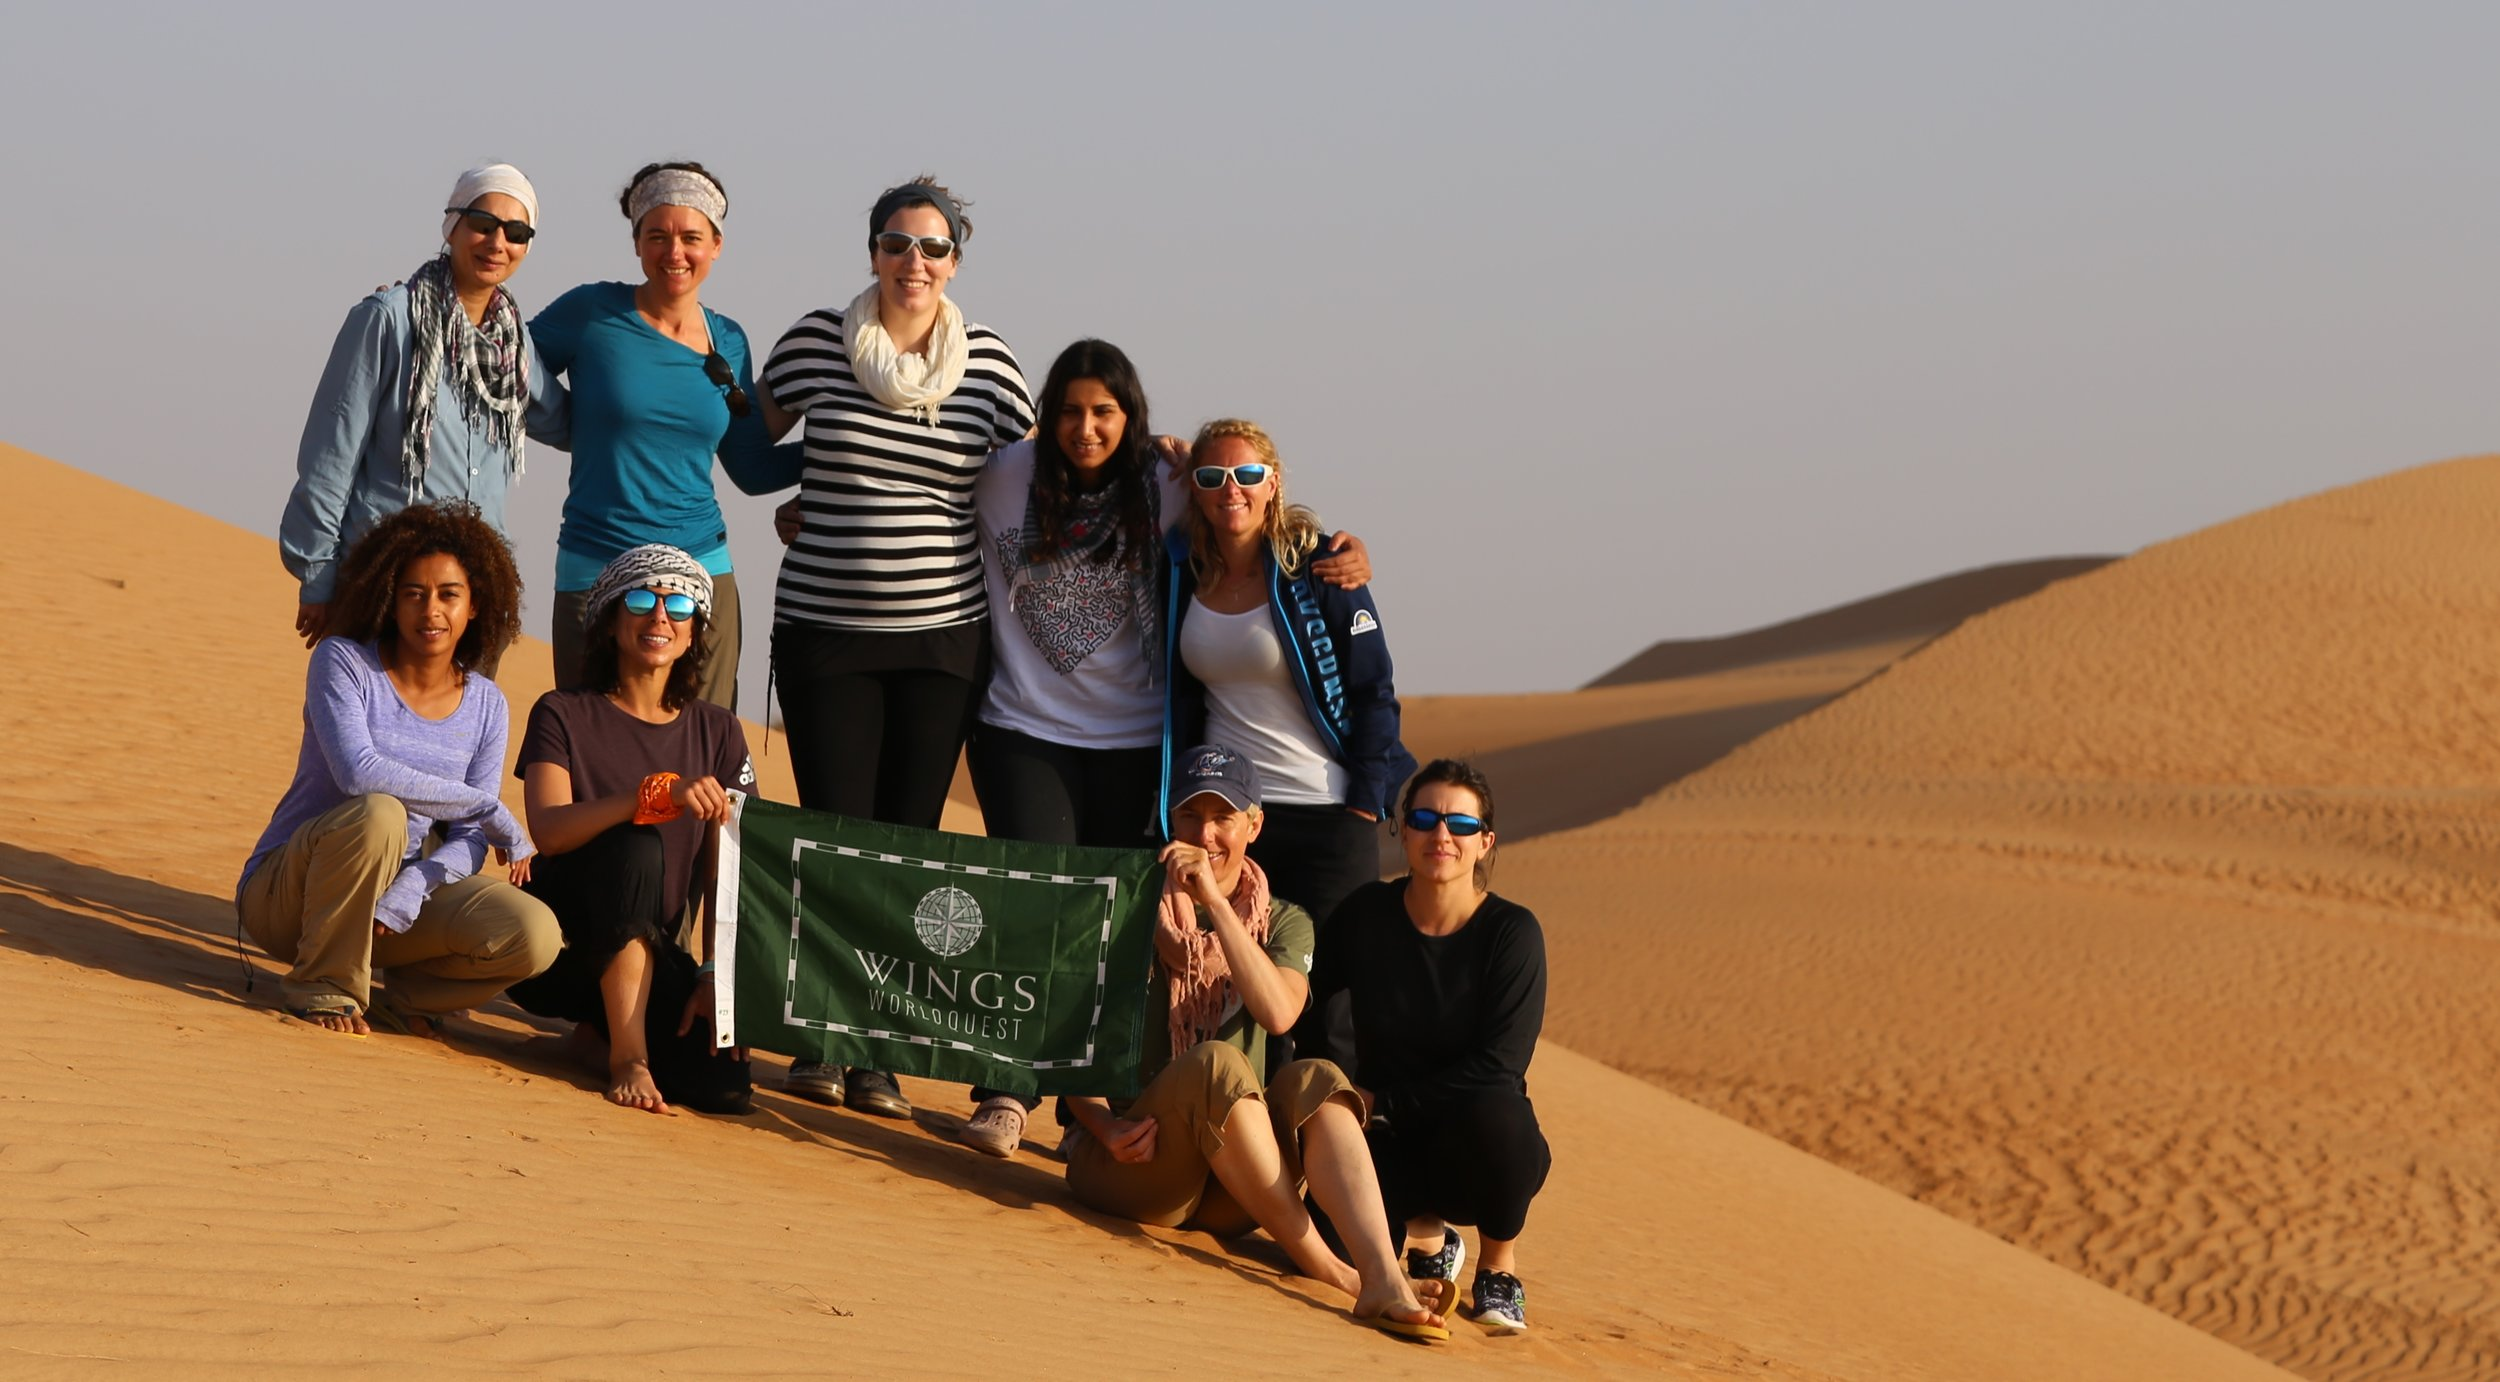 The Euro-Arabian North Pole Expedition Team and flag carriers #23: Misba (UK), Susan (France), Felicity (Expedition Leader), Mariam (Saudi Arabia), Ida (Sweden), Steph (Cyprus), Natasa (Slovenia), Lamees (Kuwait) and Anisa (Oman).